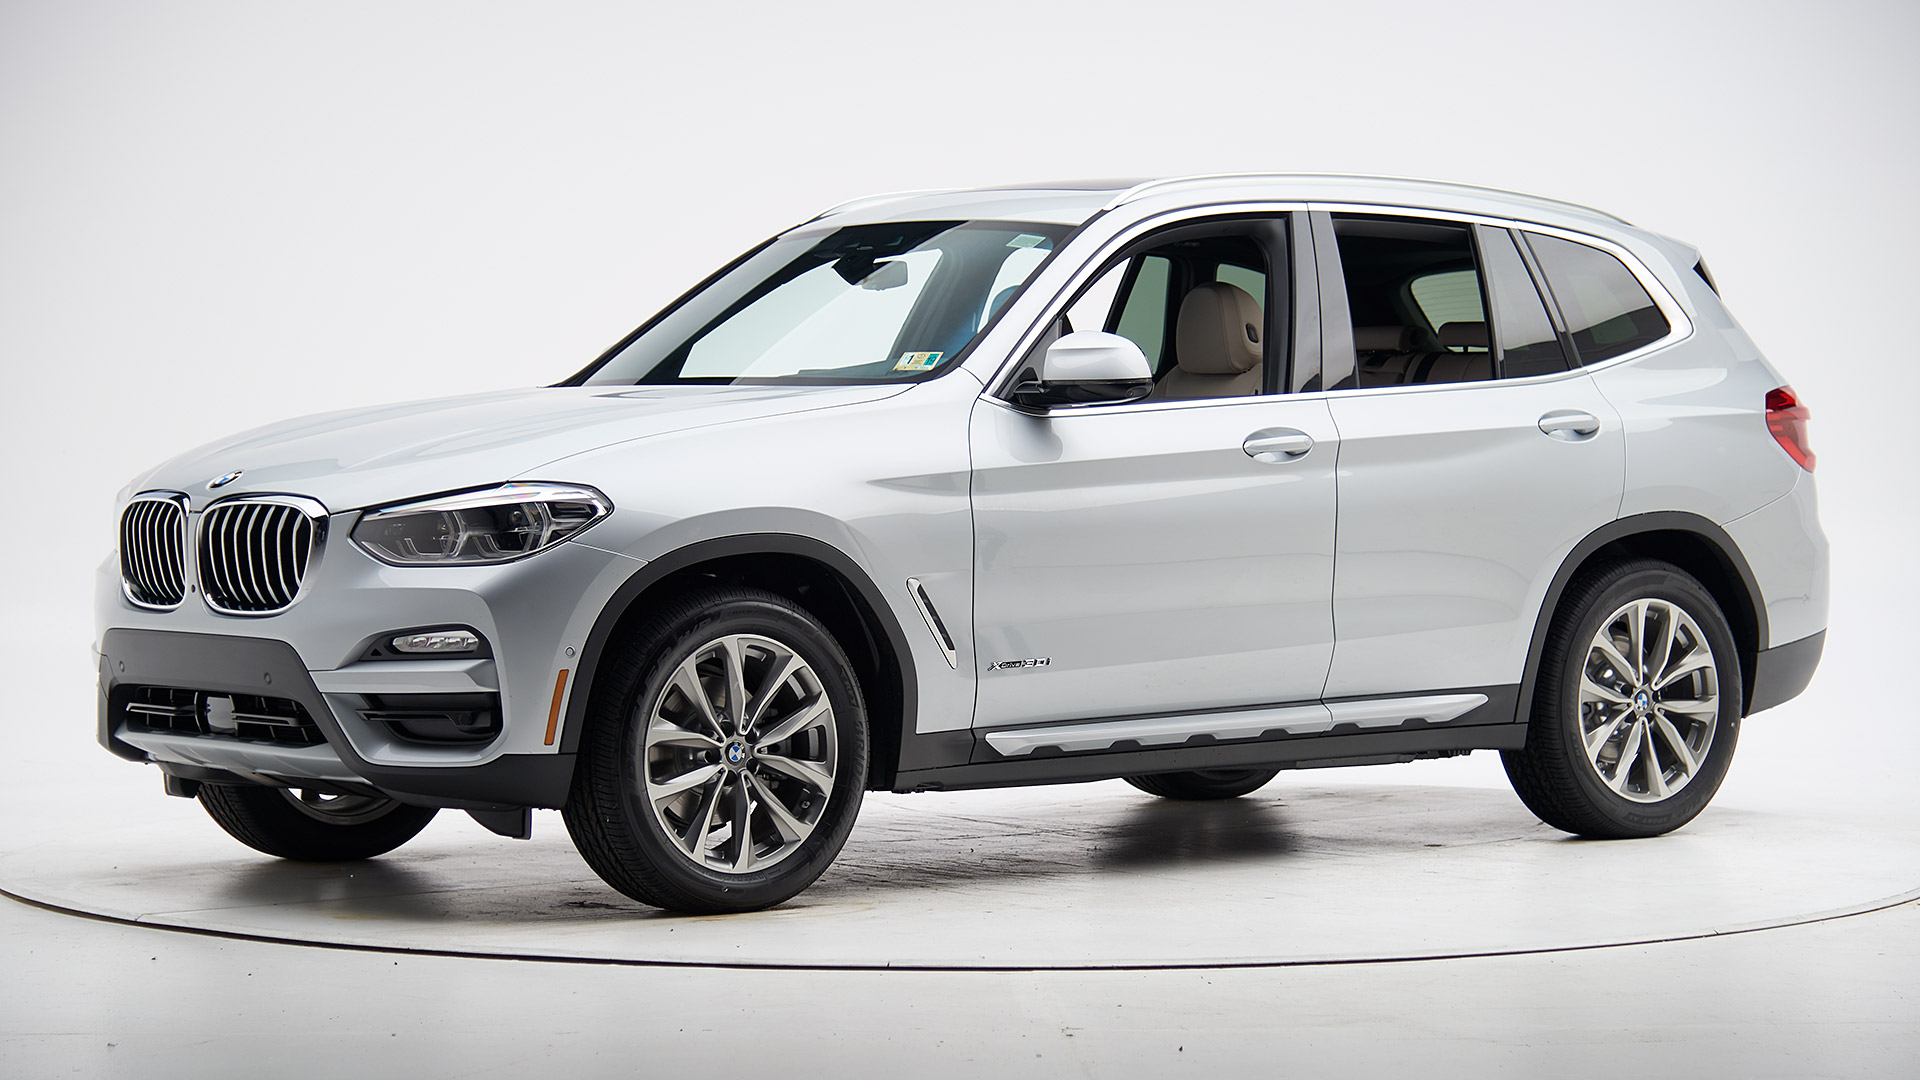 2021 BMW X3 4-door SUV